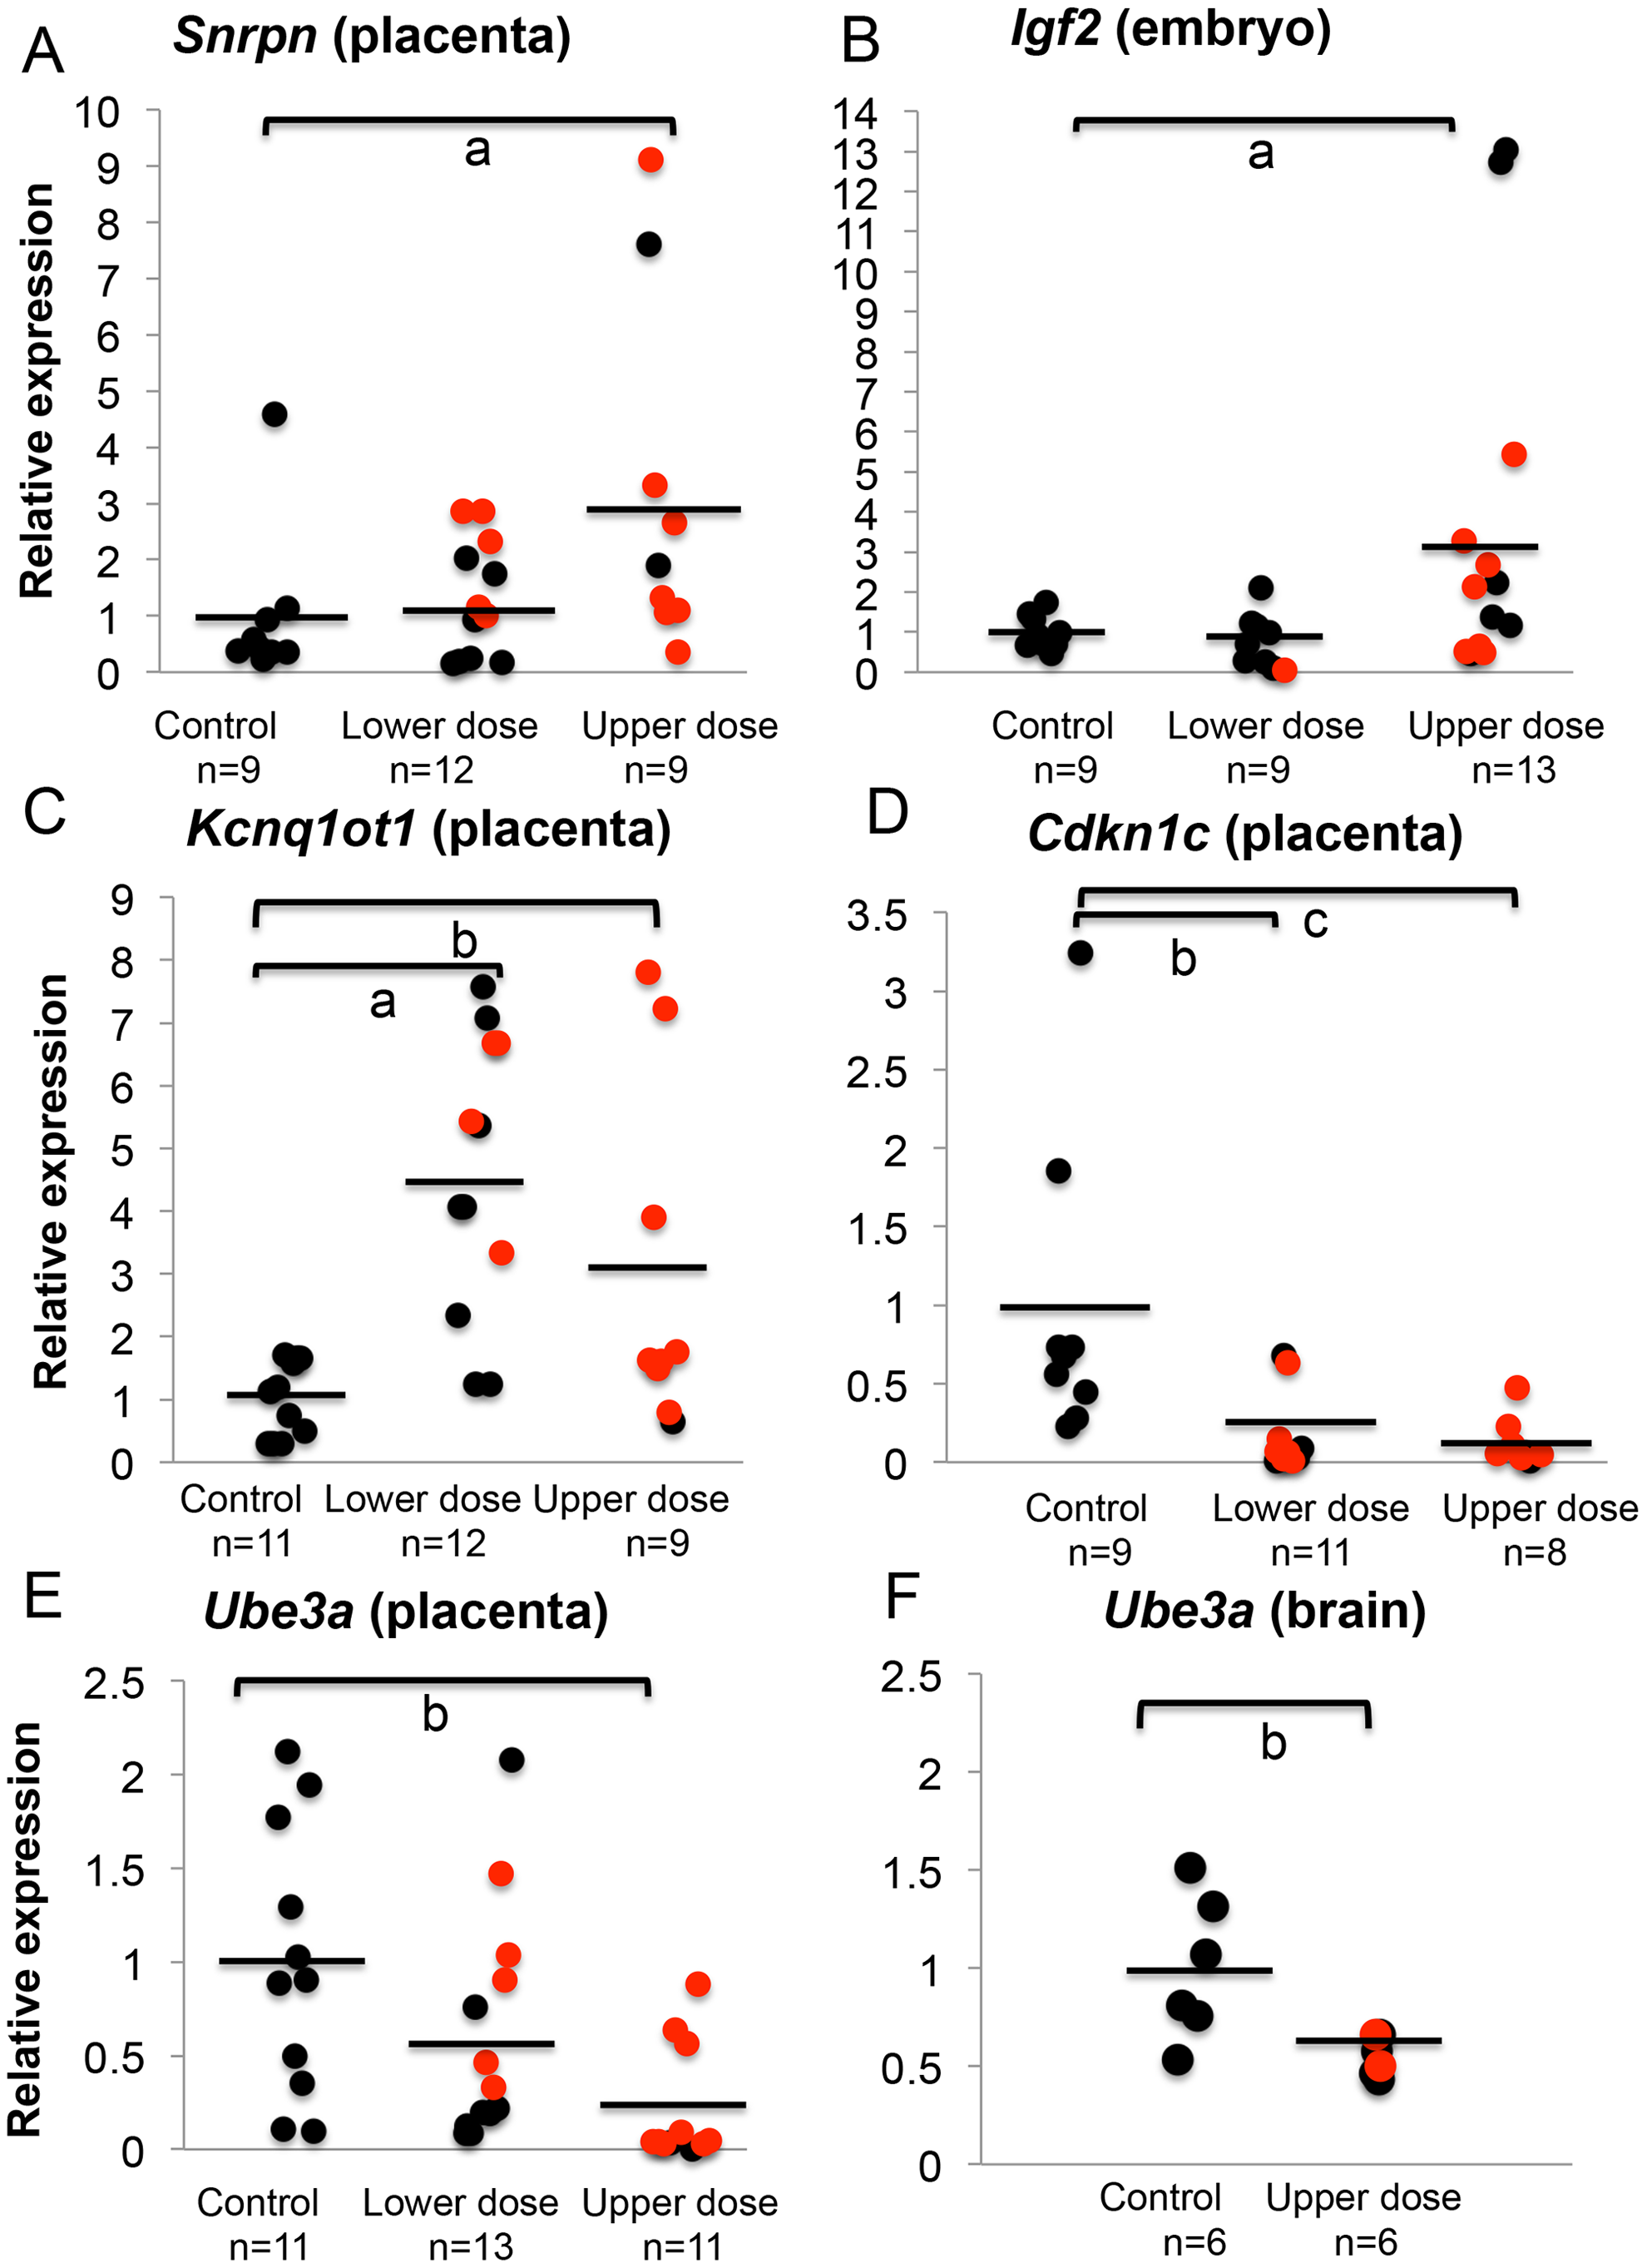 BPA exposure altered total mRNA expression of imprinted genes relative to reference genes.